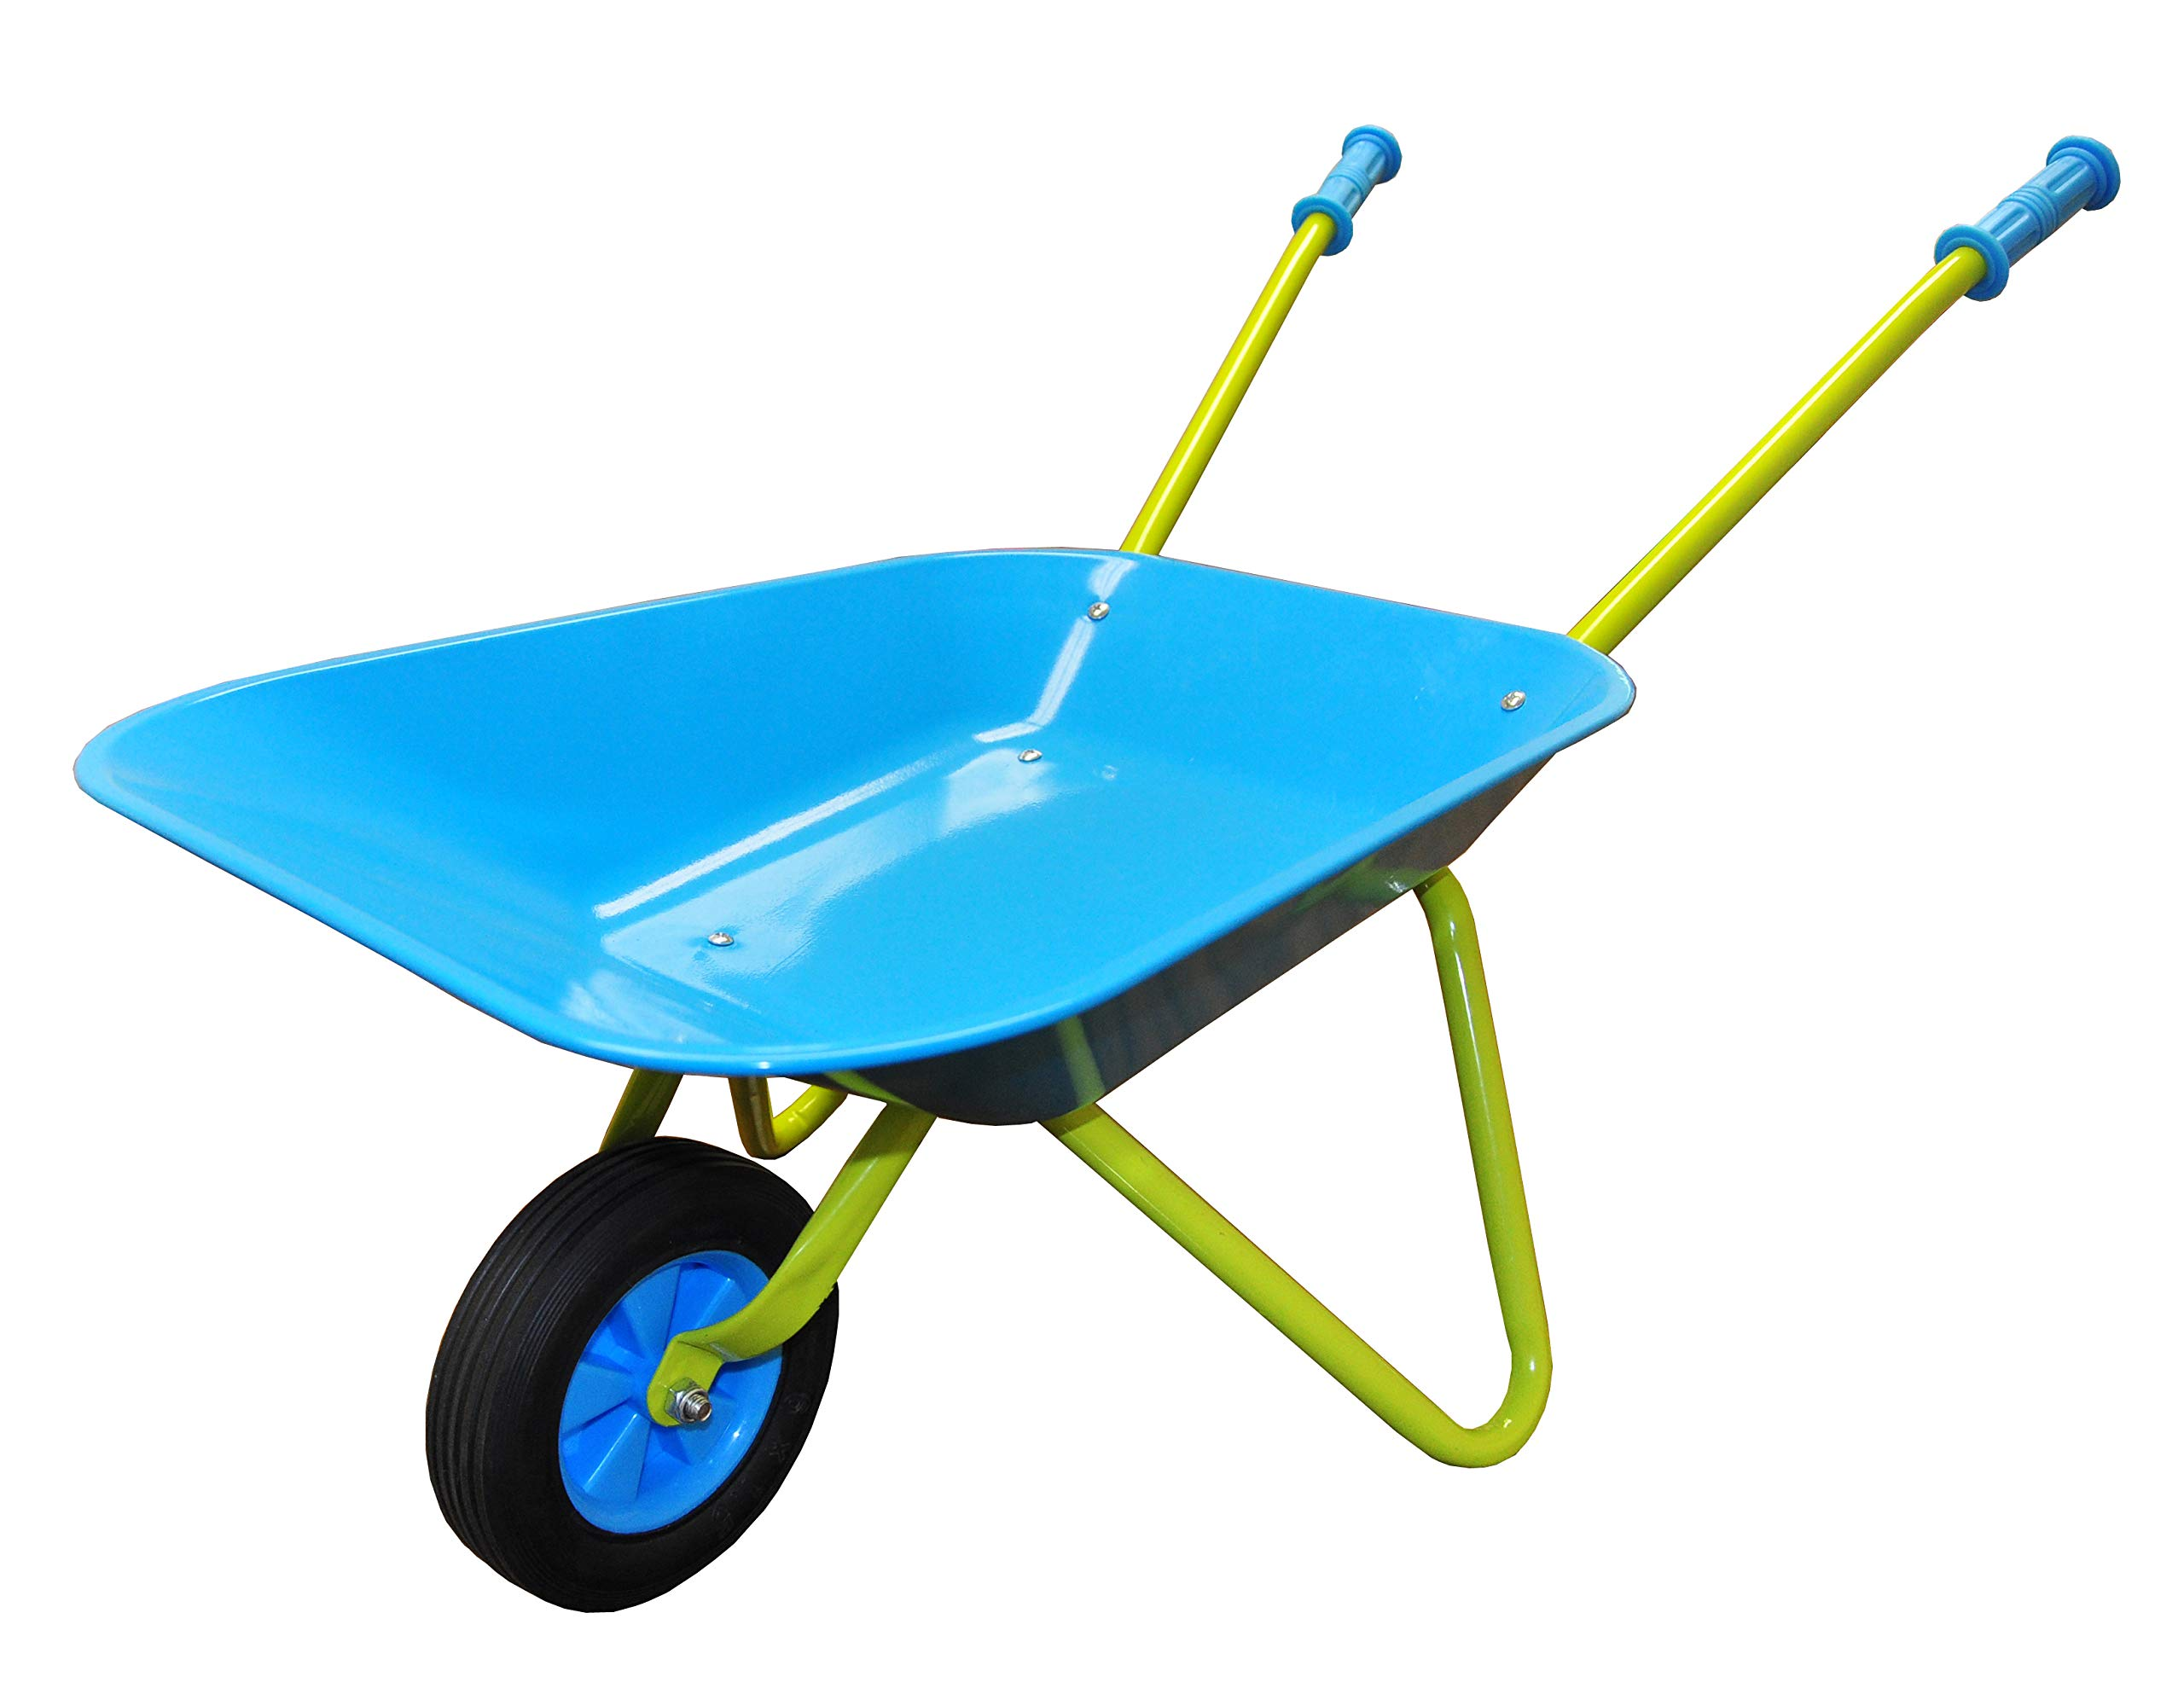 G & F 10041 JustForKids Kids Wheel Barrel made of real metal kids size by G & F Products